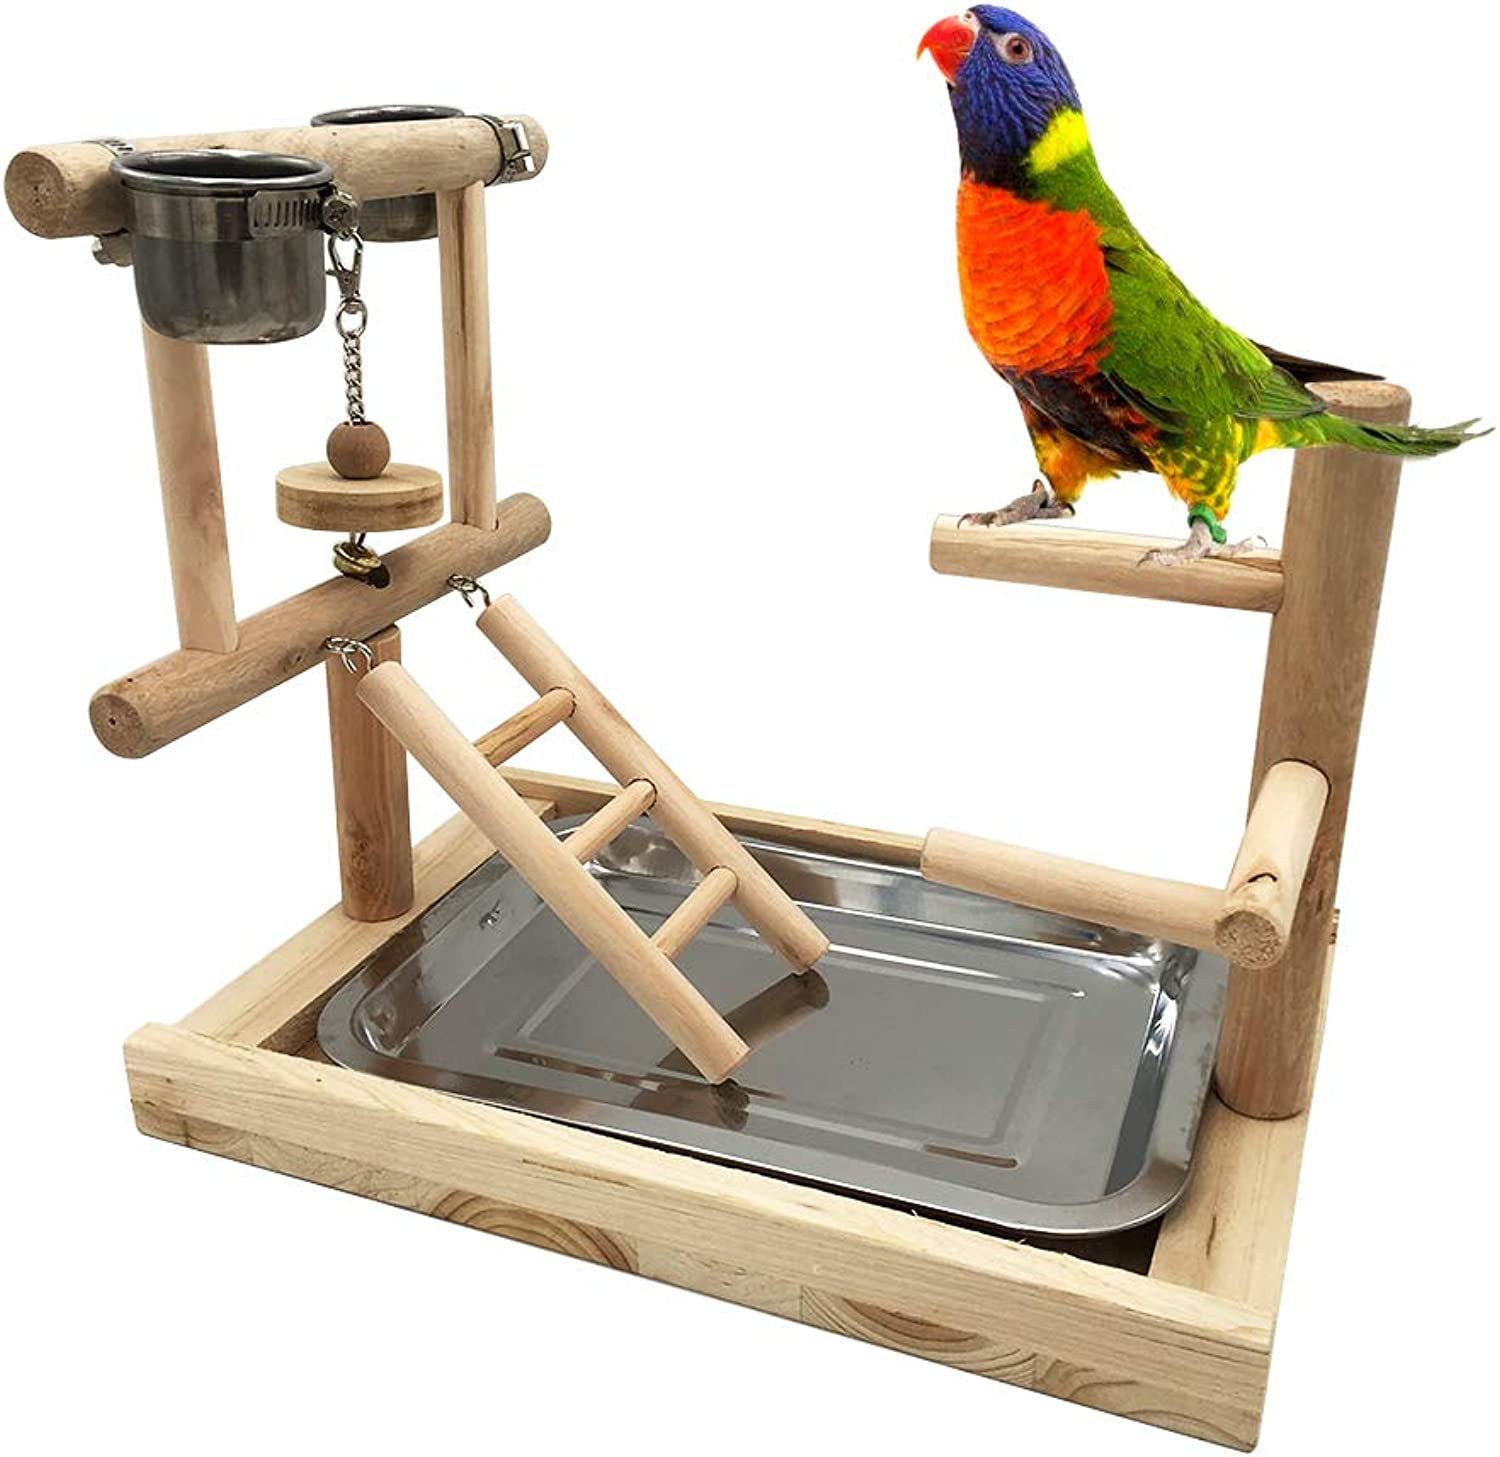 Borange Bird Perch Wood Training Stand Parred Wooden Platform Stand Natural Handmade Playstand Playground Cage Accessories for Parakeet Conure Cockatiel Exercise Toy (Design 3 (2 Cups with Ladder))